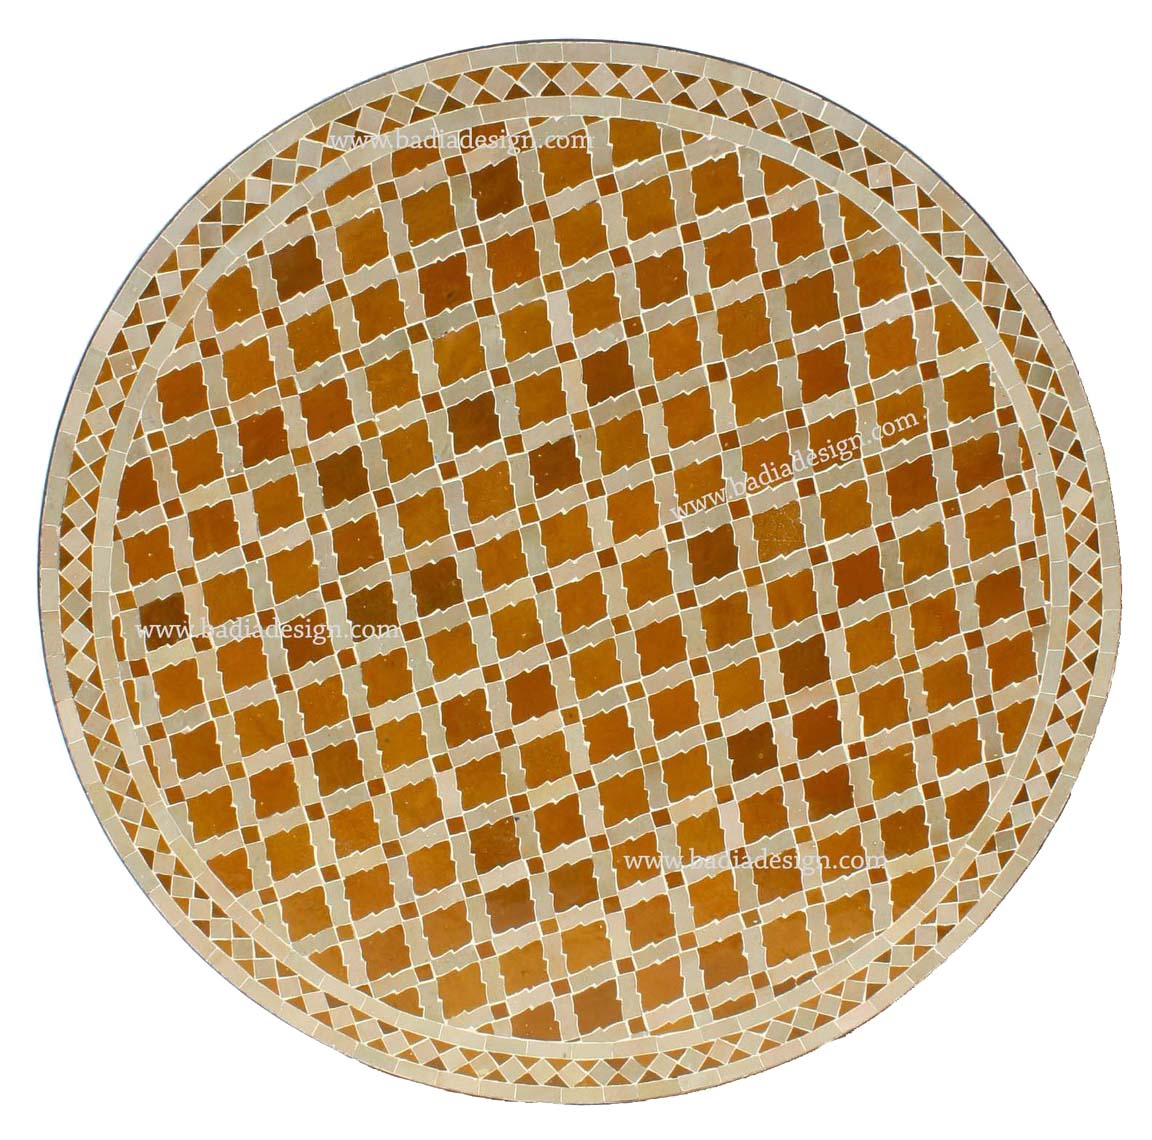 39-inch-moroccan-mosaic-tile-table-top-mtr315.jpg